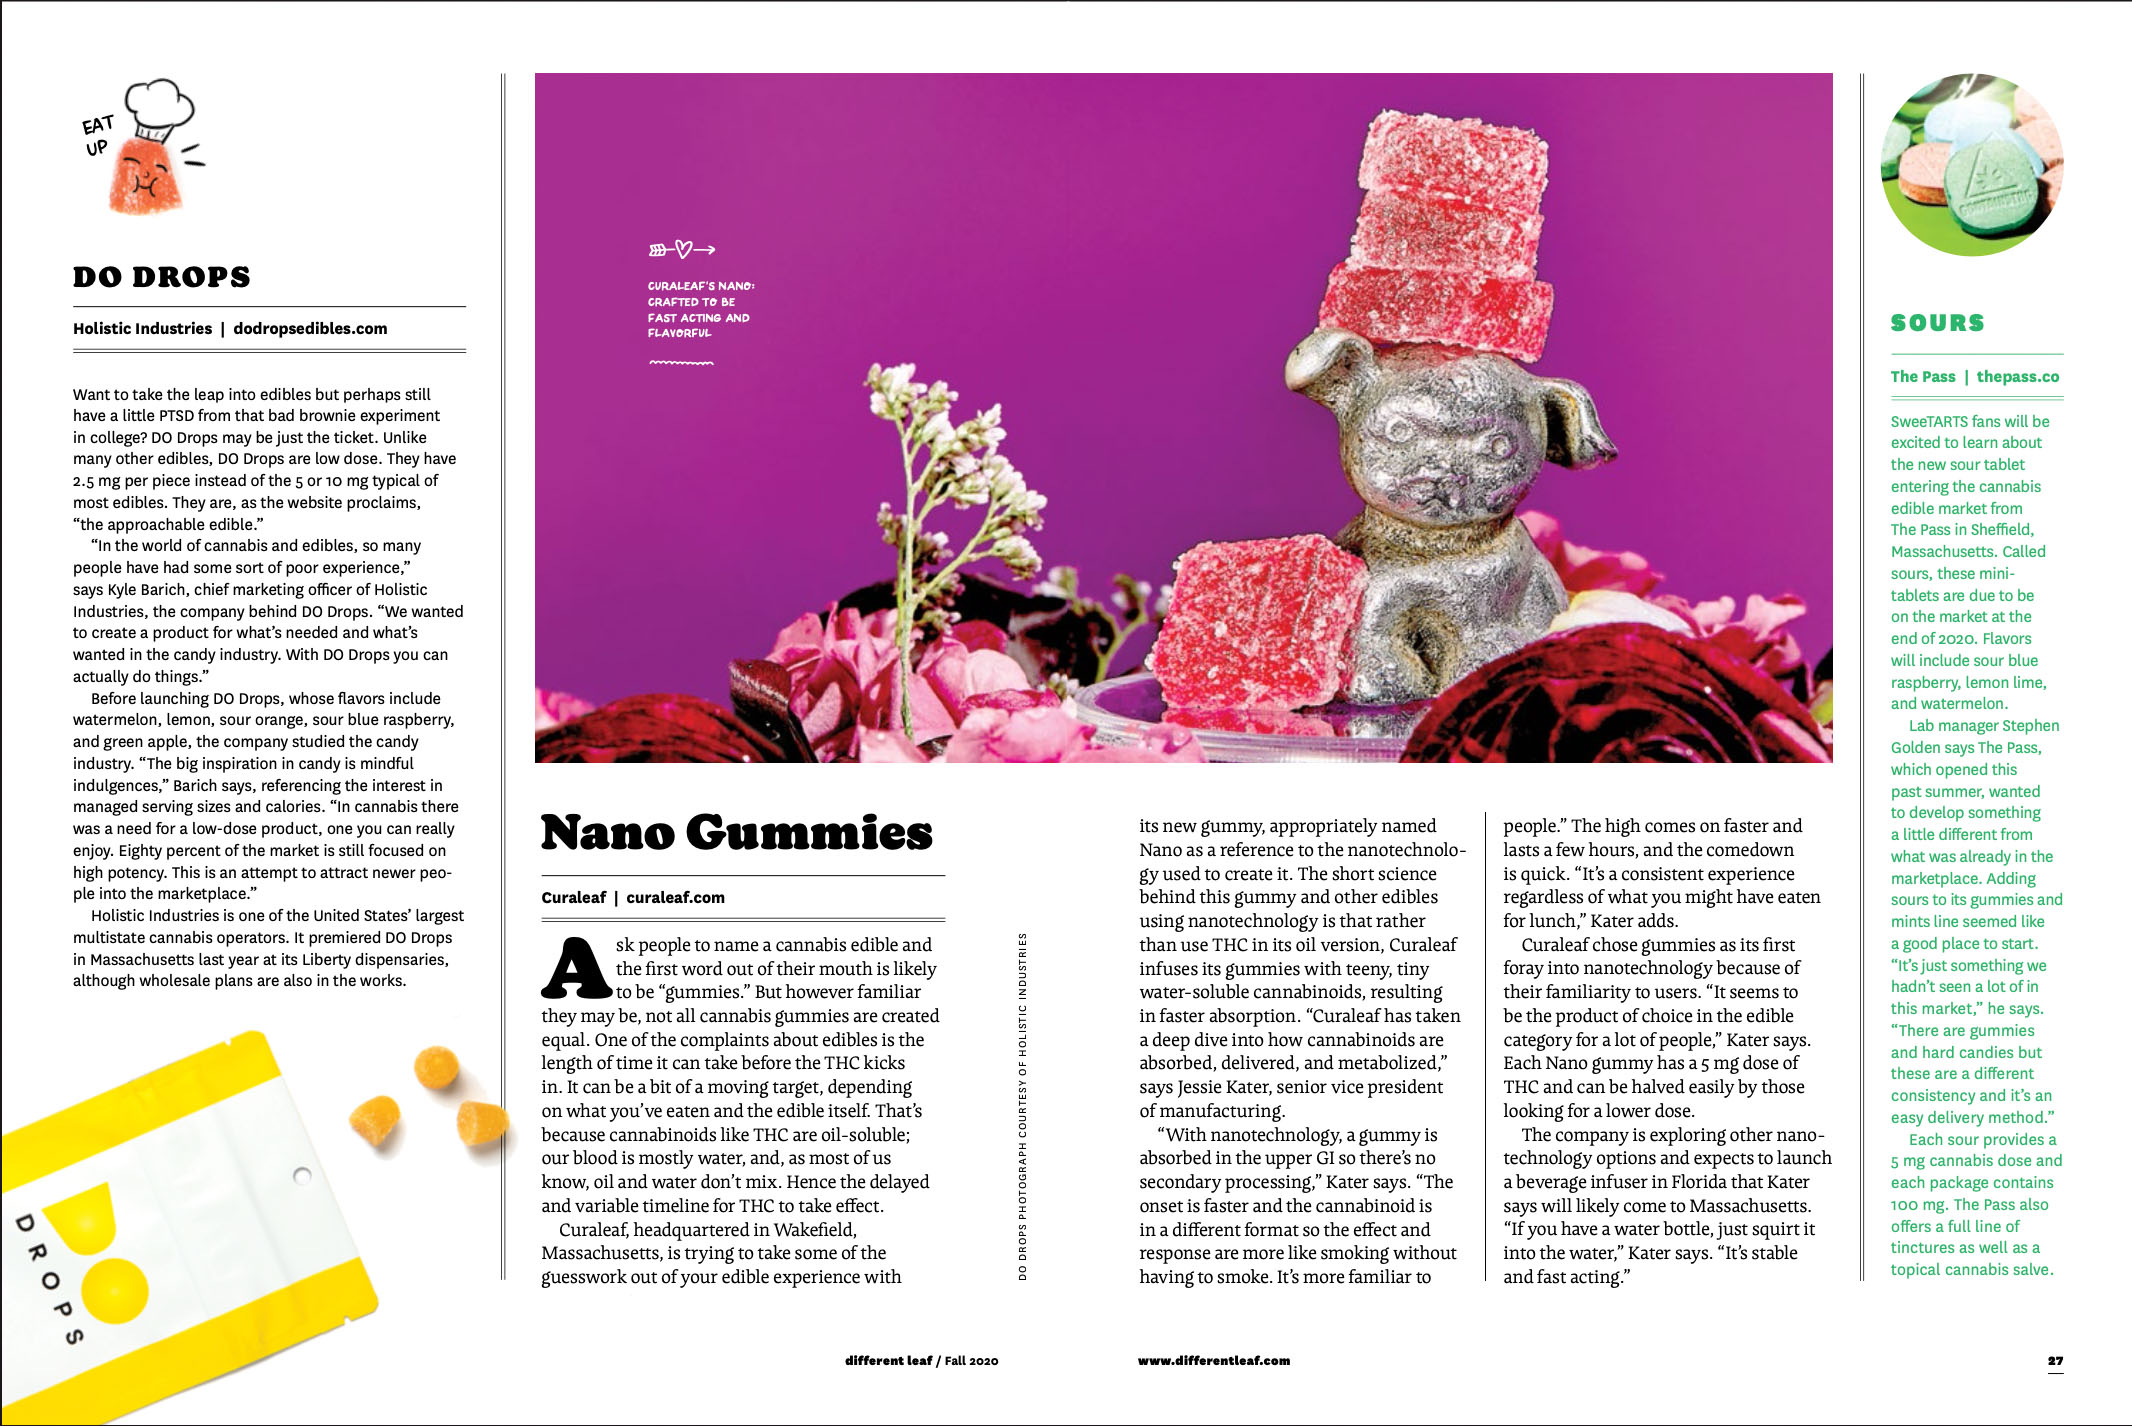 dominic-perri-commissioned-different-leaf-magazine-nano-gummies